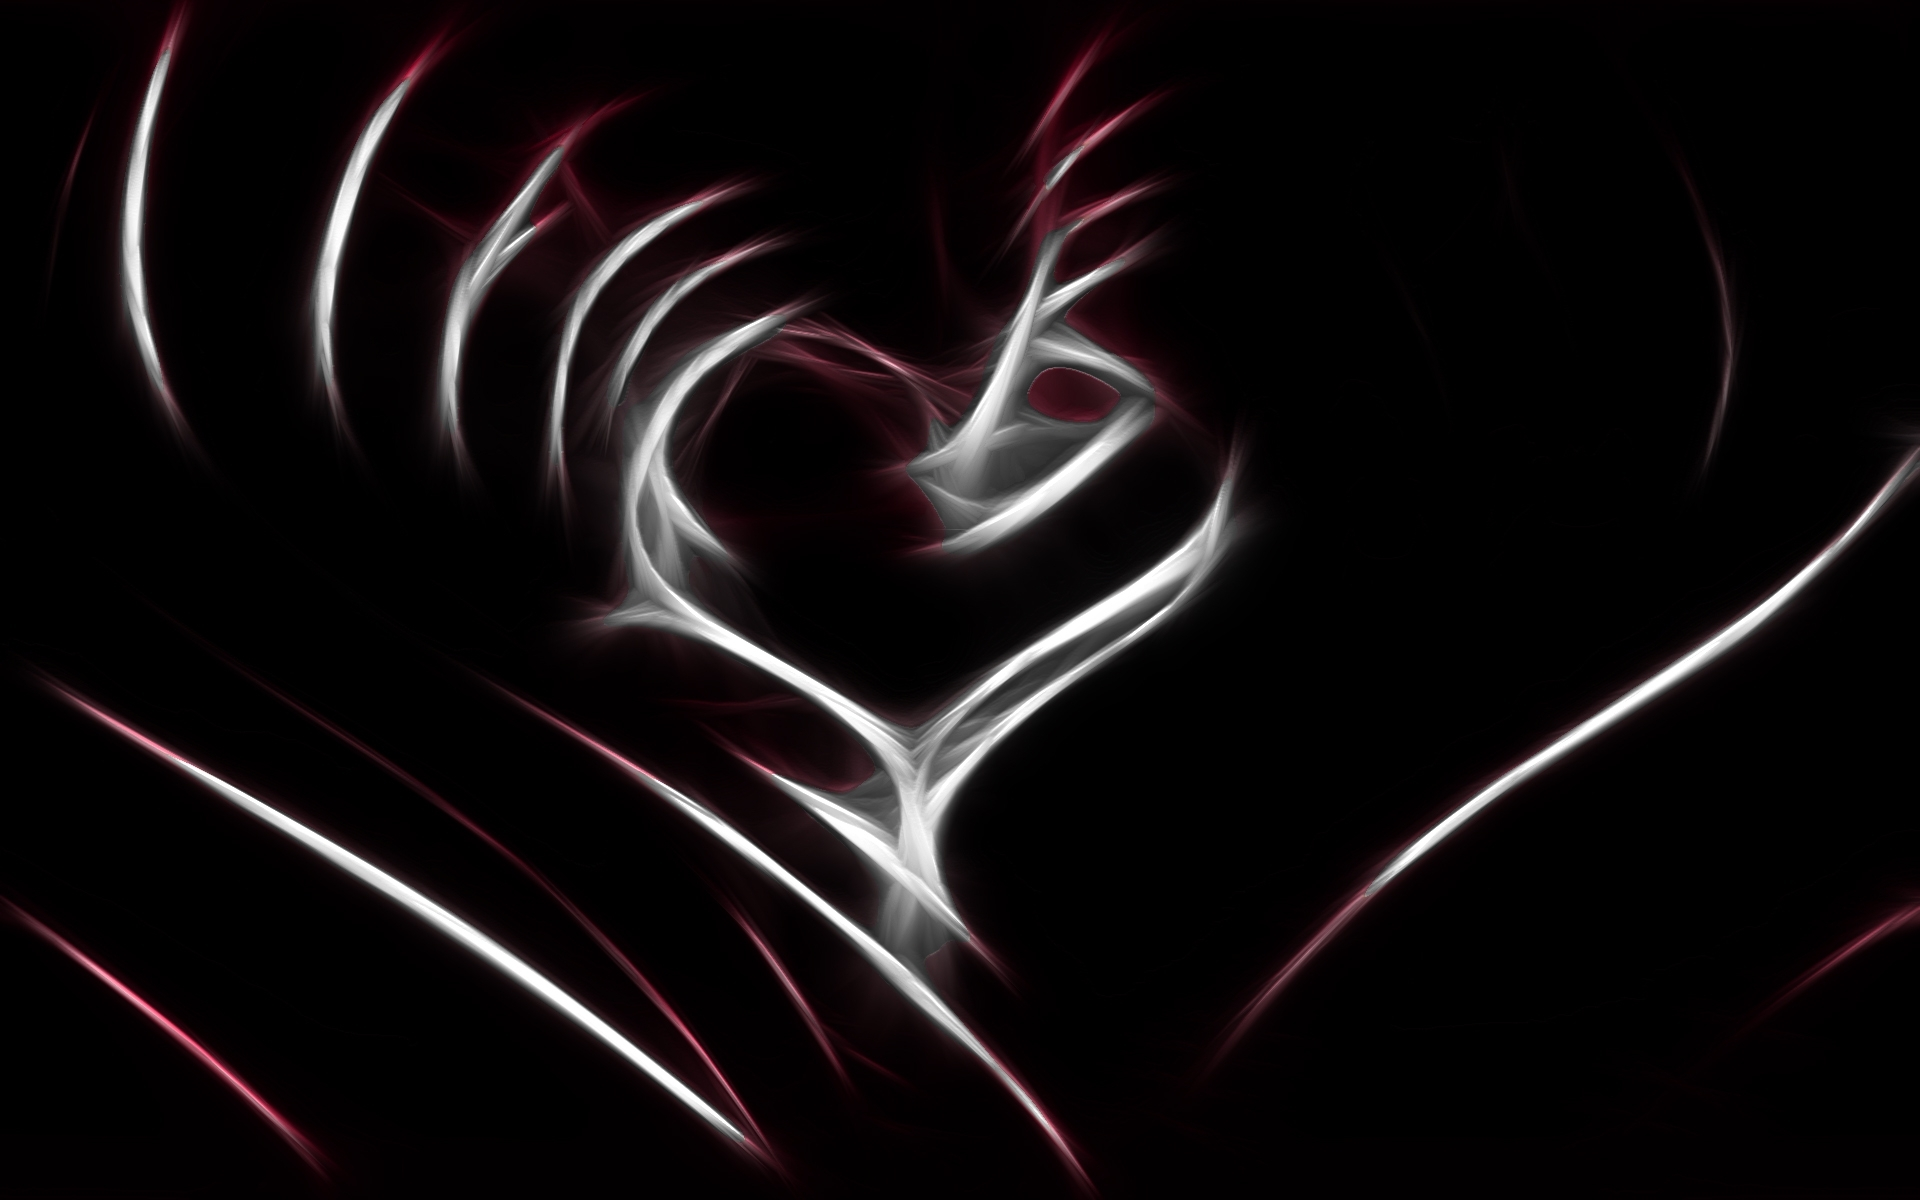 67 Black And White Heart Wallpaper On Wallpapersafari